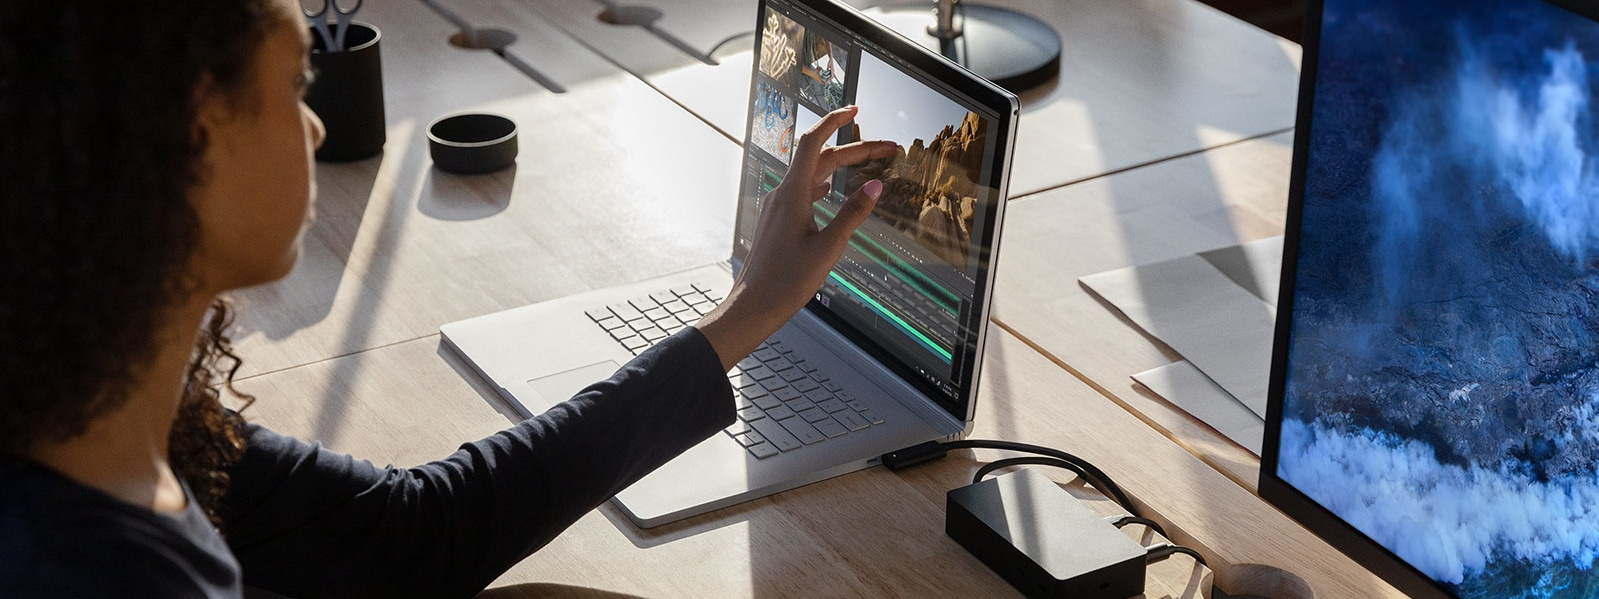 A woman interacts with Adobe Premier Pro on her Surface Book 3, which is connected to a 4K monitor on her desk